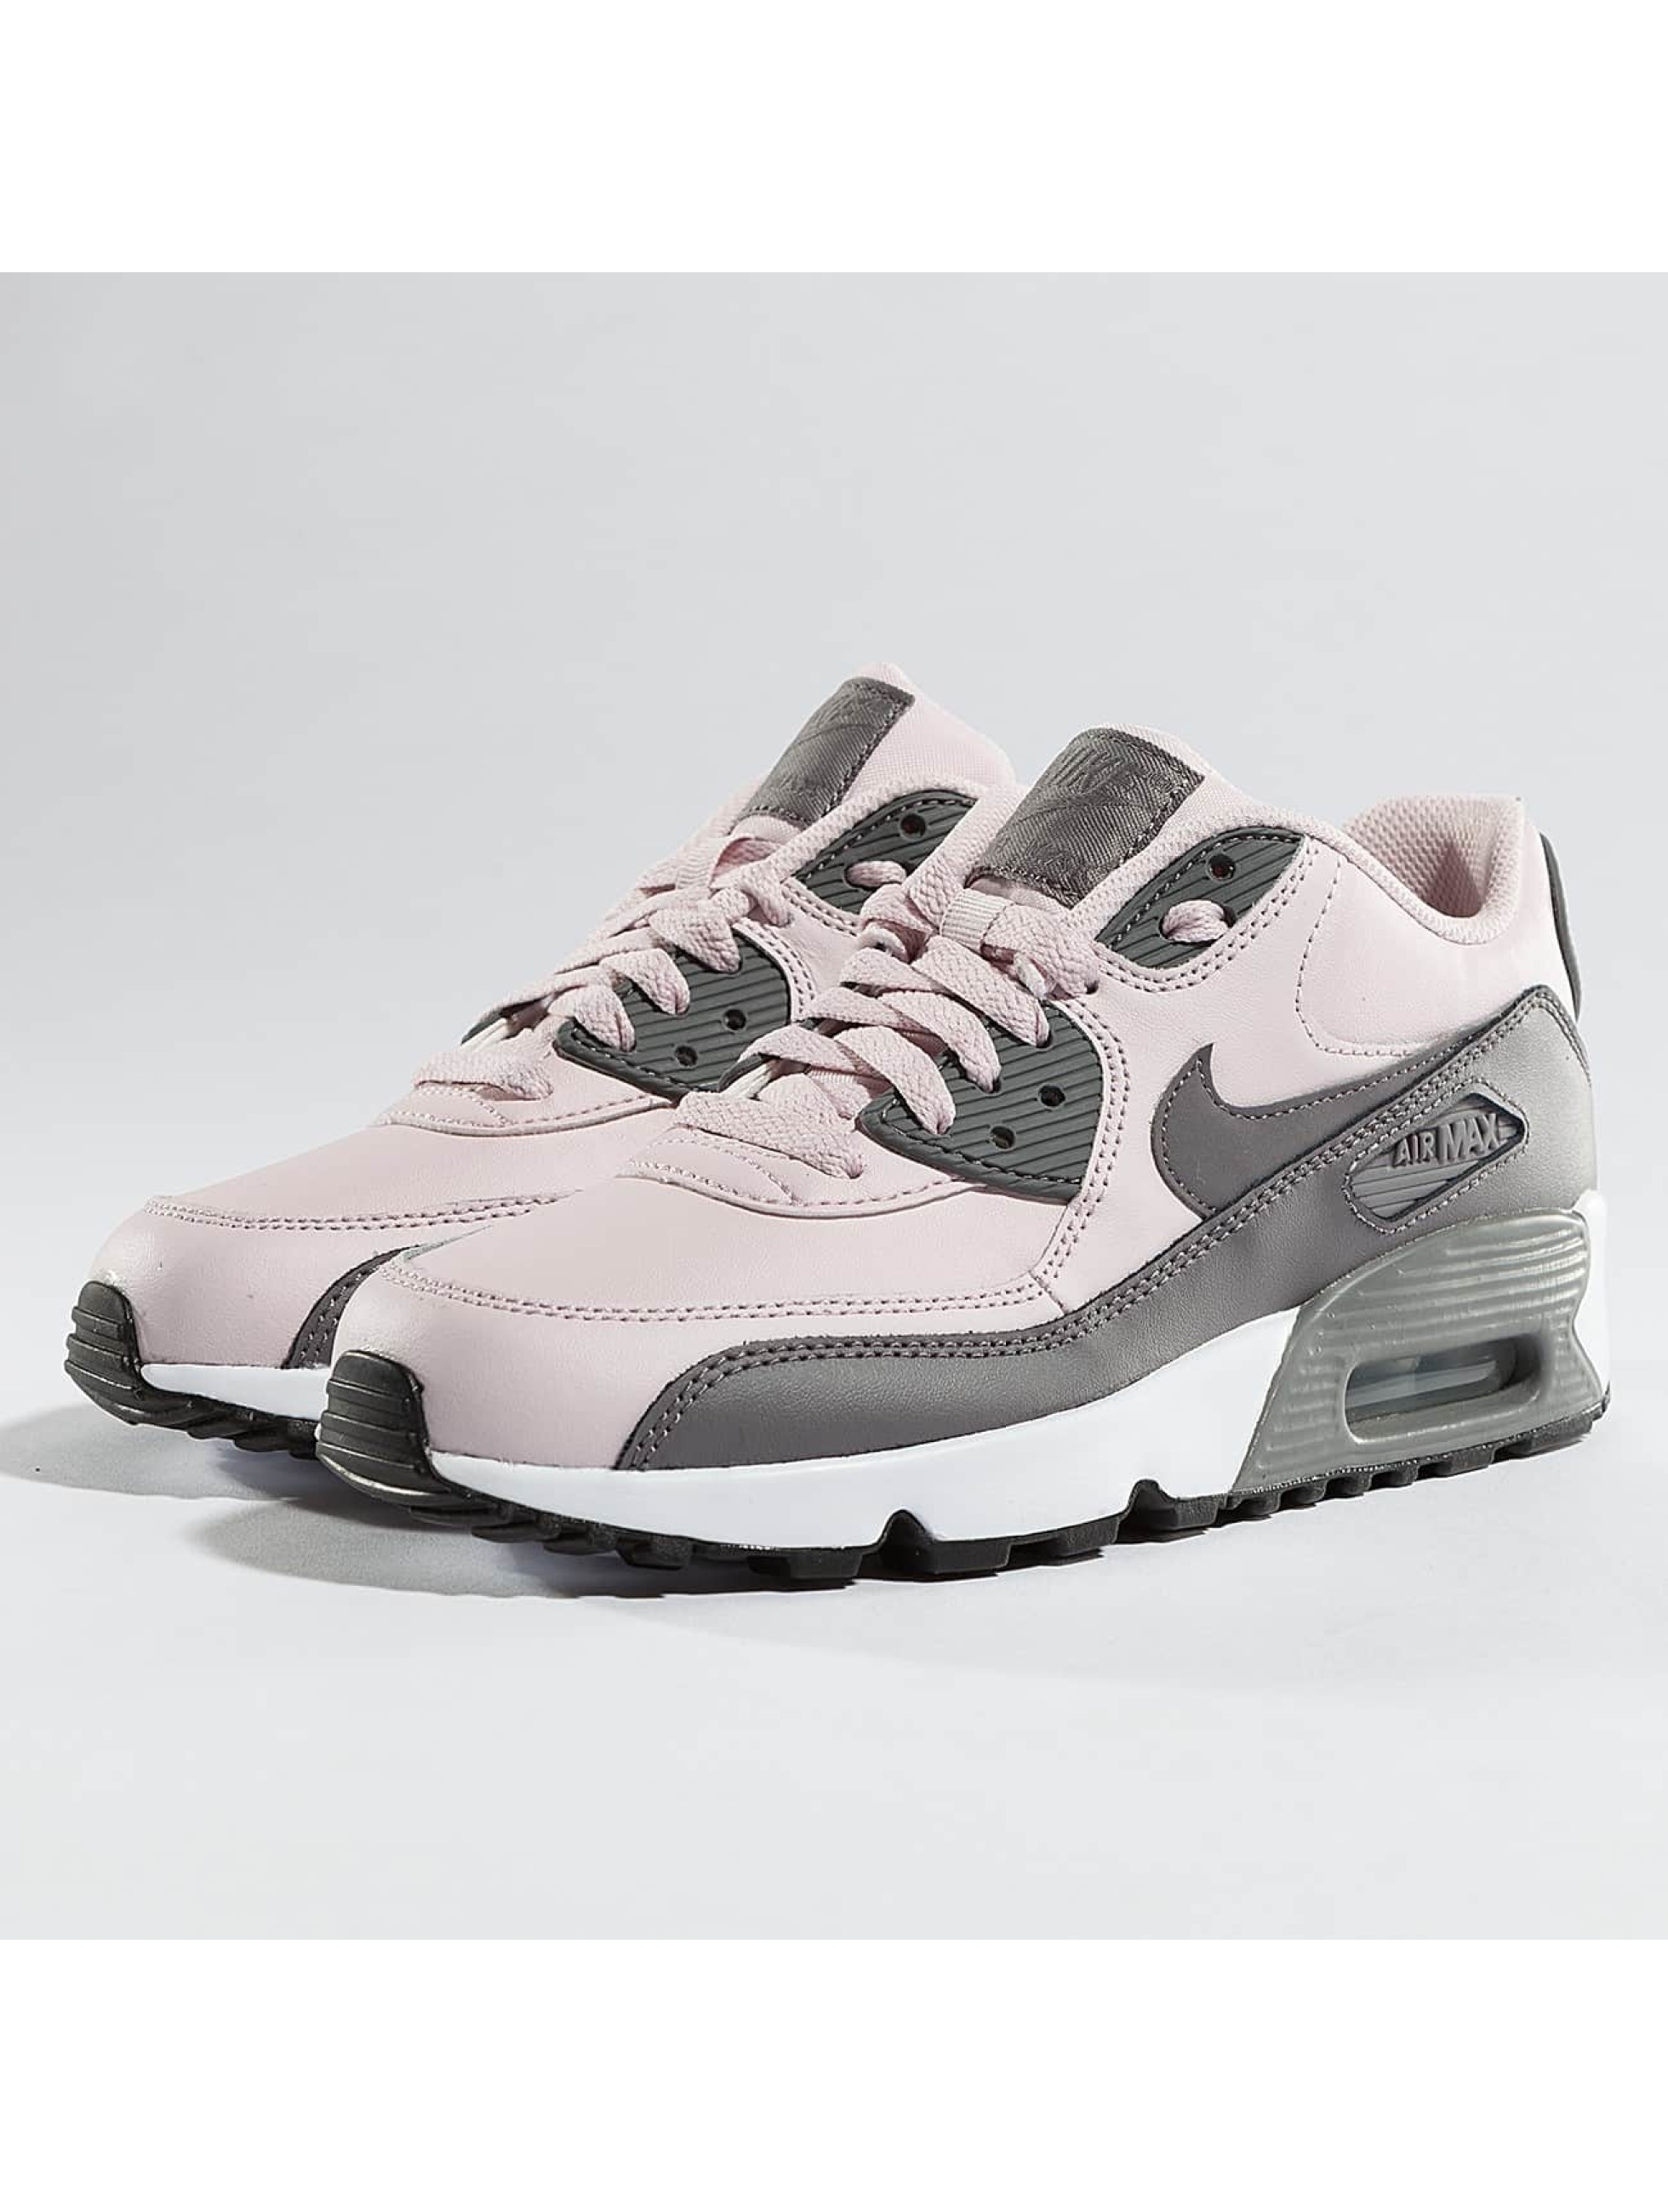 nike air max damen 90 rosa grau kostenloser versand. Black Bedroom Furniture Sets. Home Design Ideas